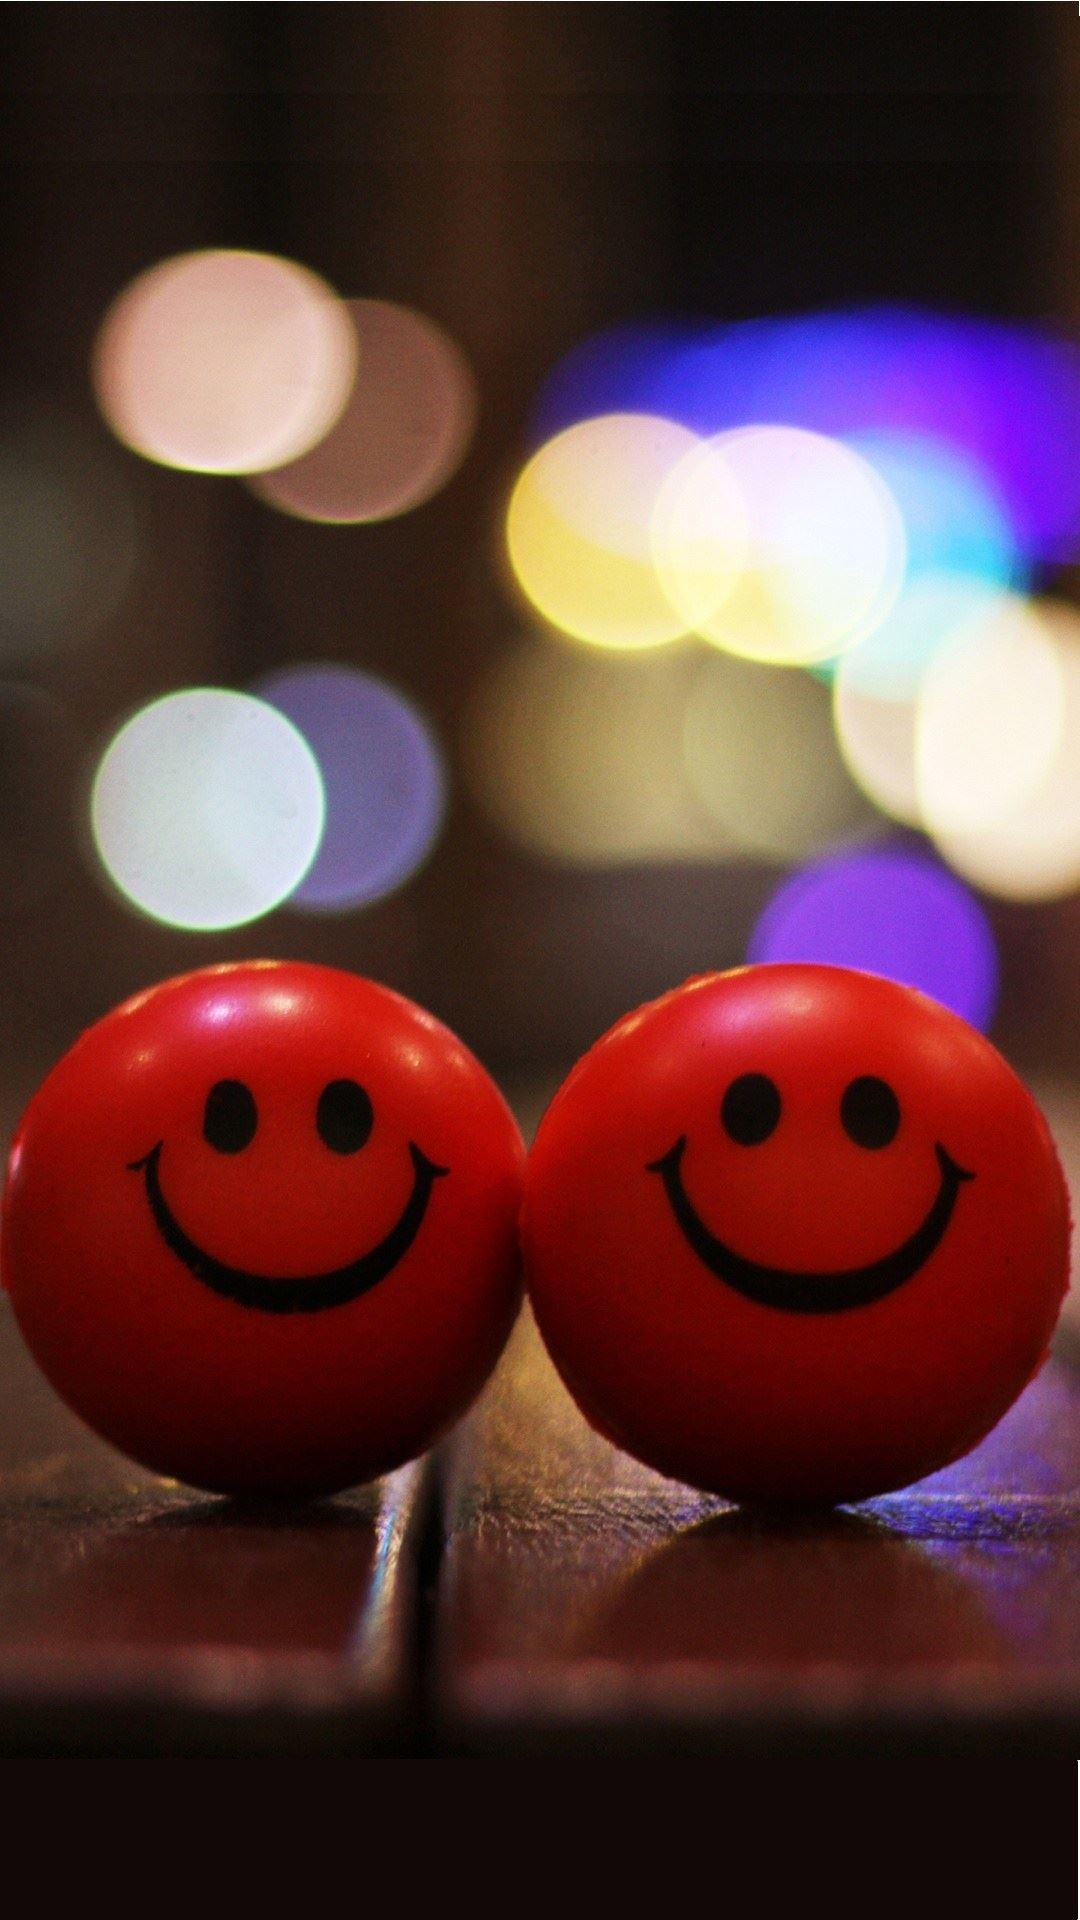 Red Happy Smiley iPhone 6 Plus HD Wallpaper …